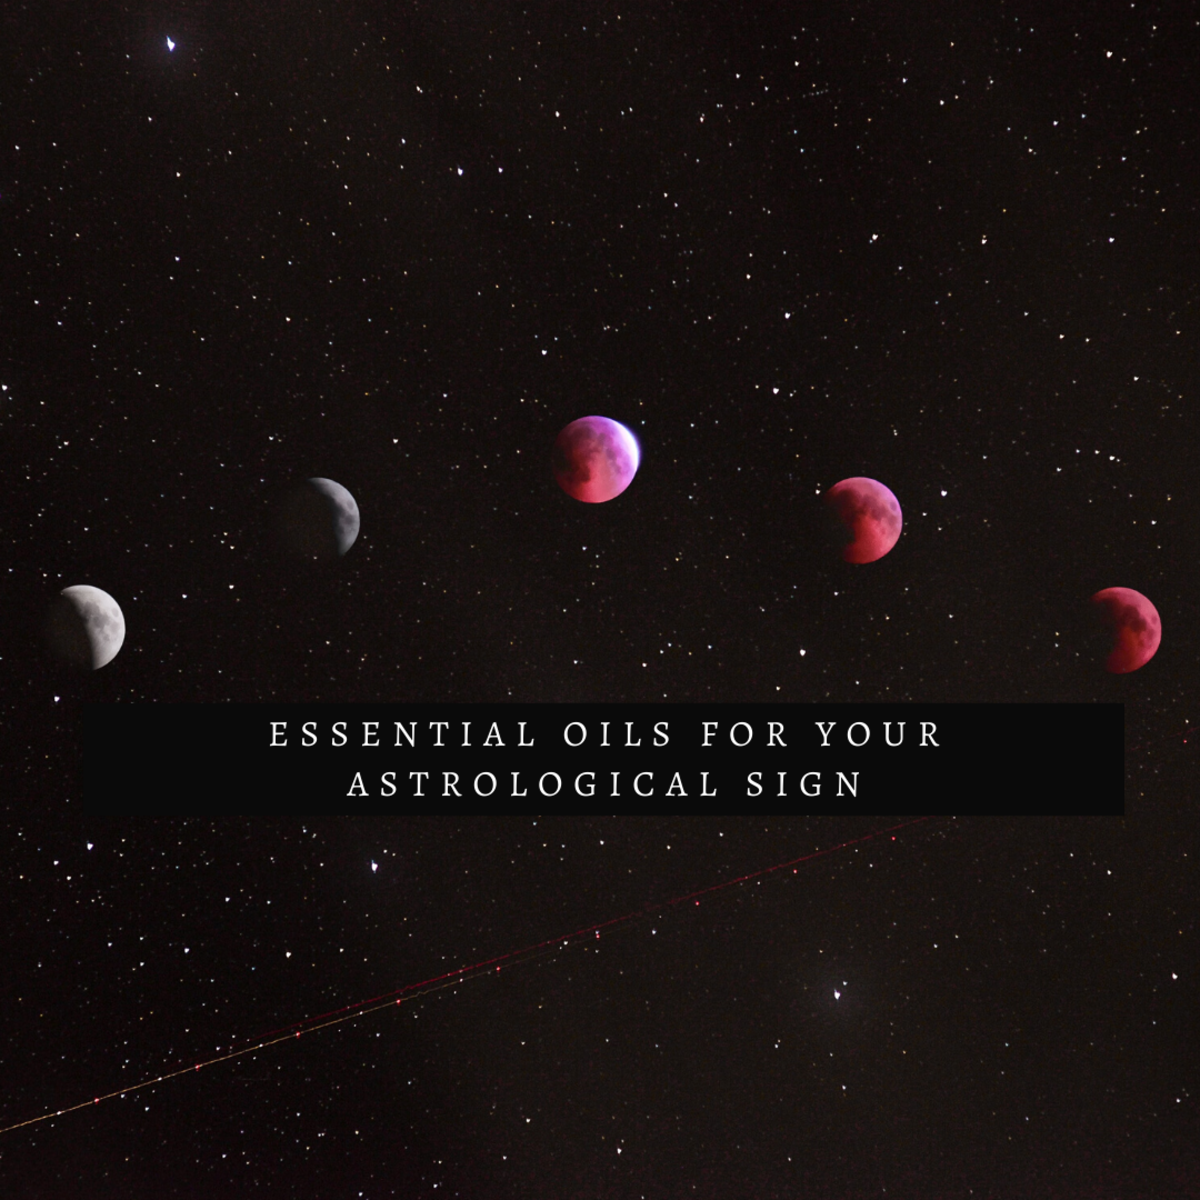 Essential Oils for Your Zodiac Sign